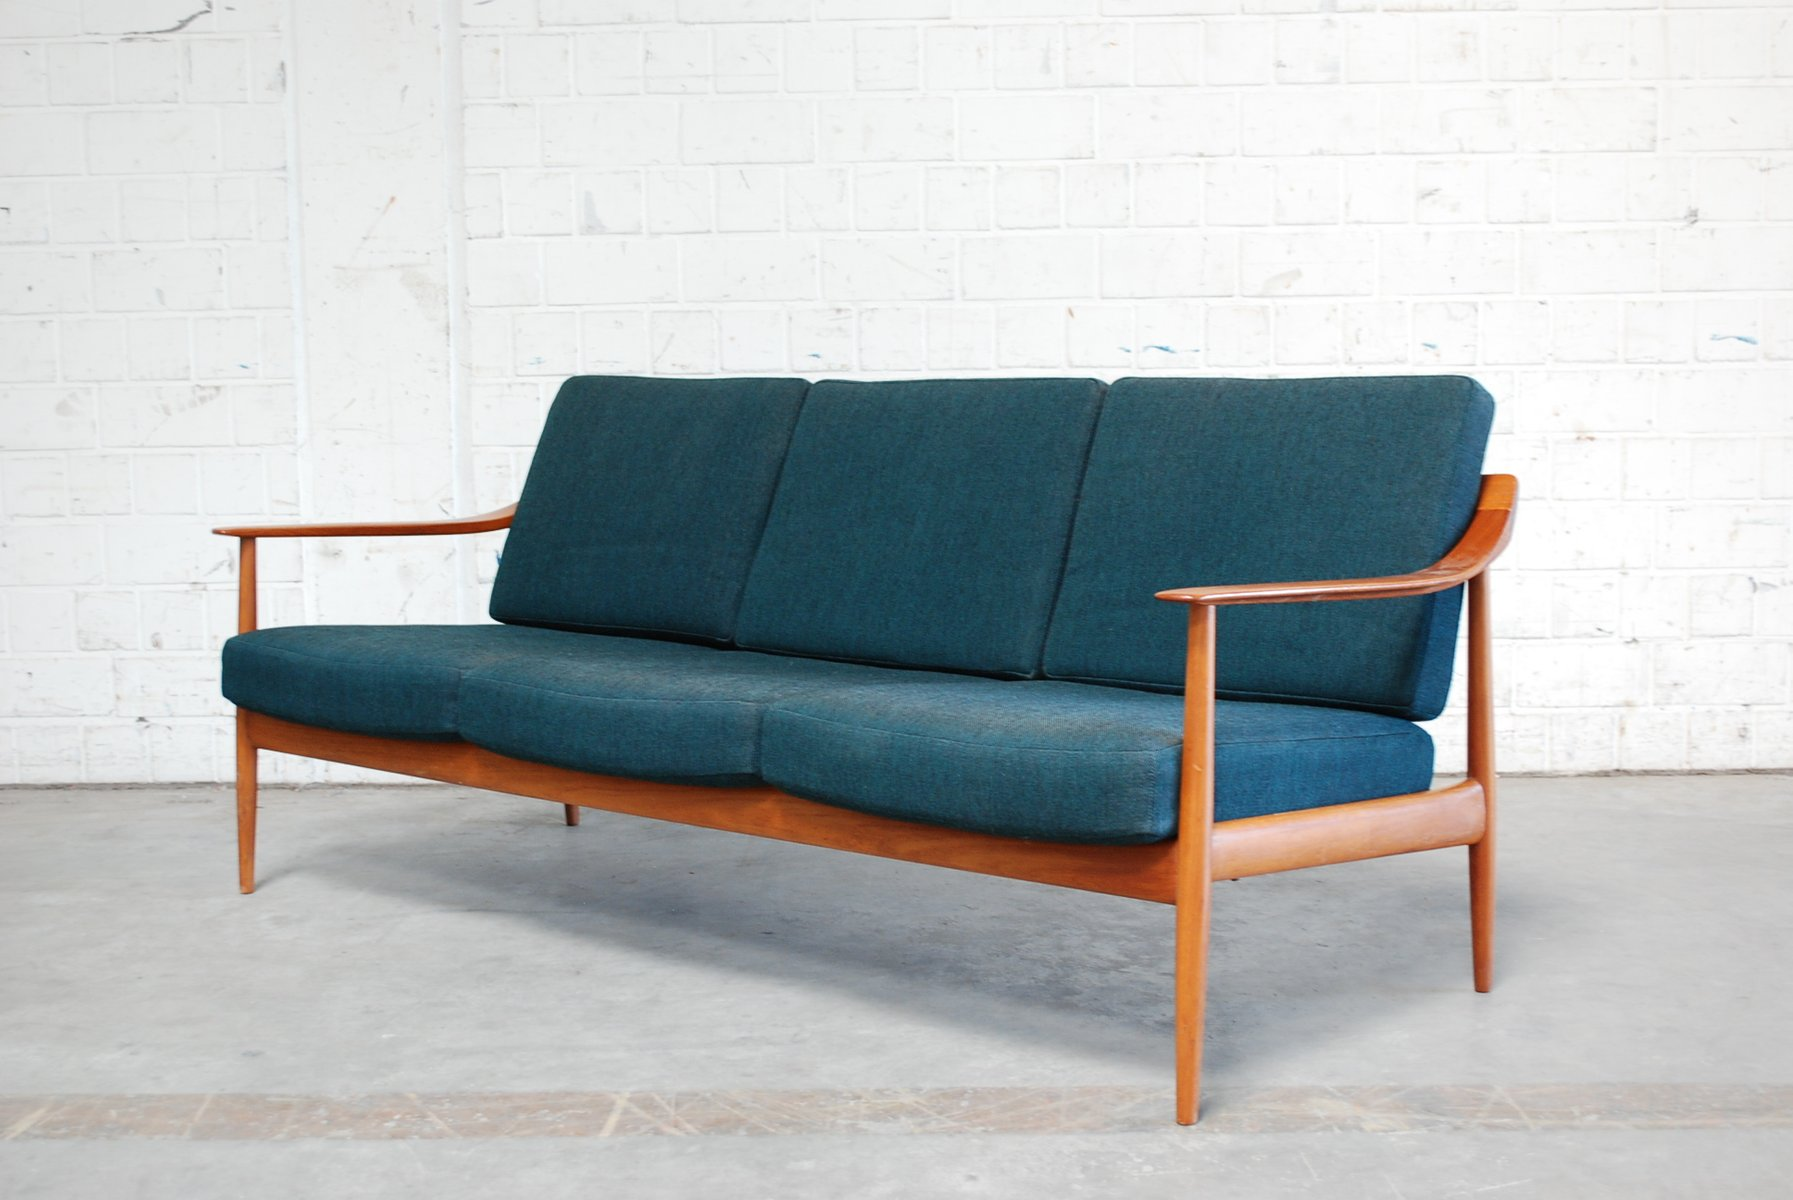 Knoll Antimott Sofa : petrol teak sofa from knoll 1960s for sale at pamono ~ Sanjose-hotels-ca.com Haus und Dekorationen